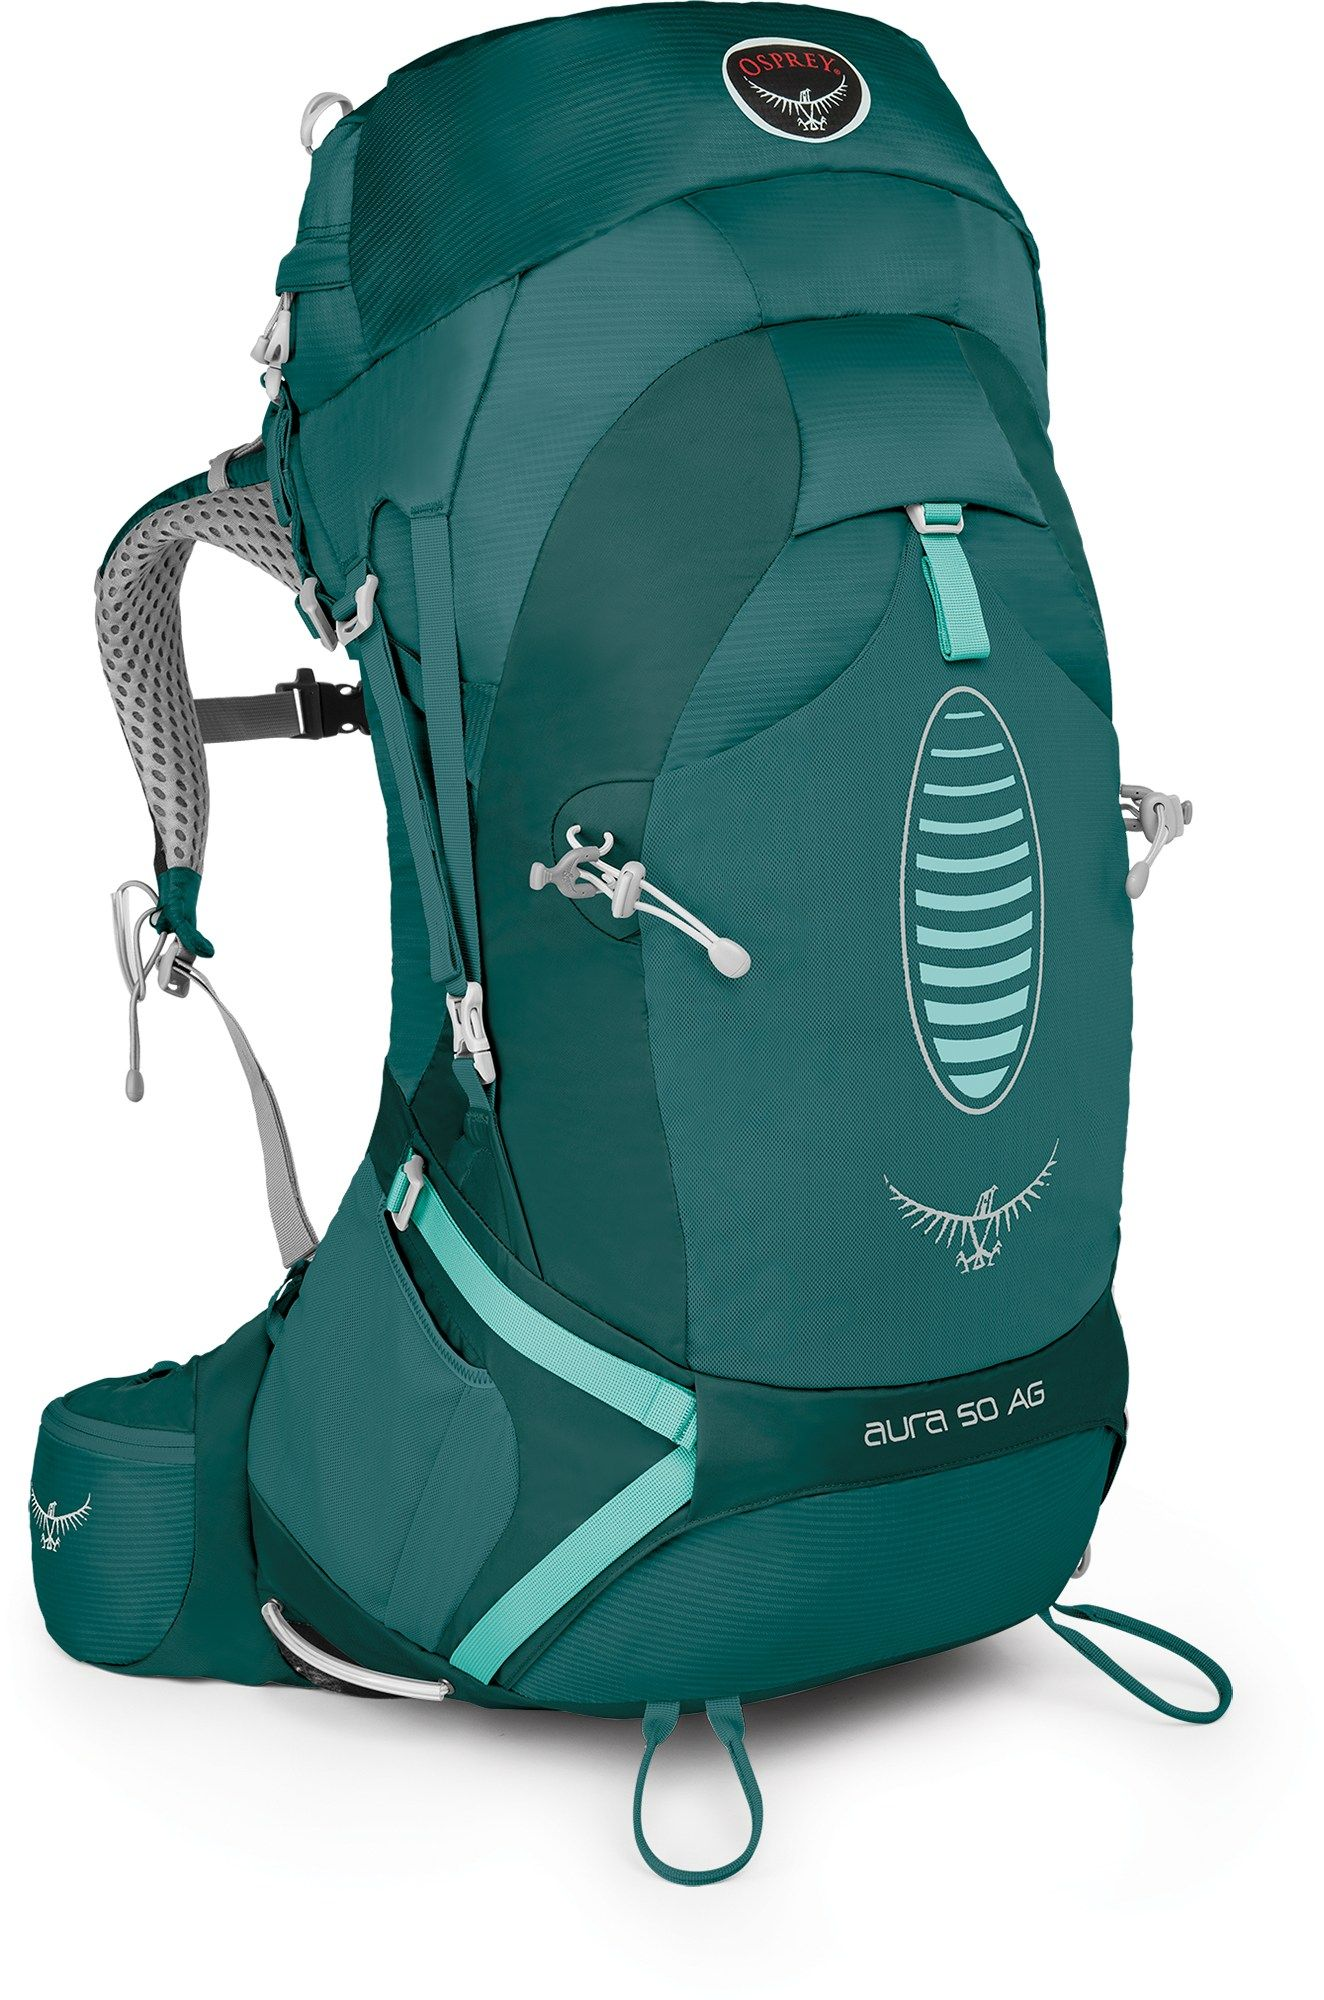 eadd1ba2c295 Osprey Aura 50 AG Pack - Women s. Mine!!!! Can t wait for school to end so  I can get lost!